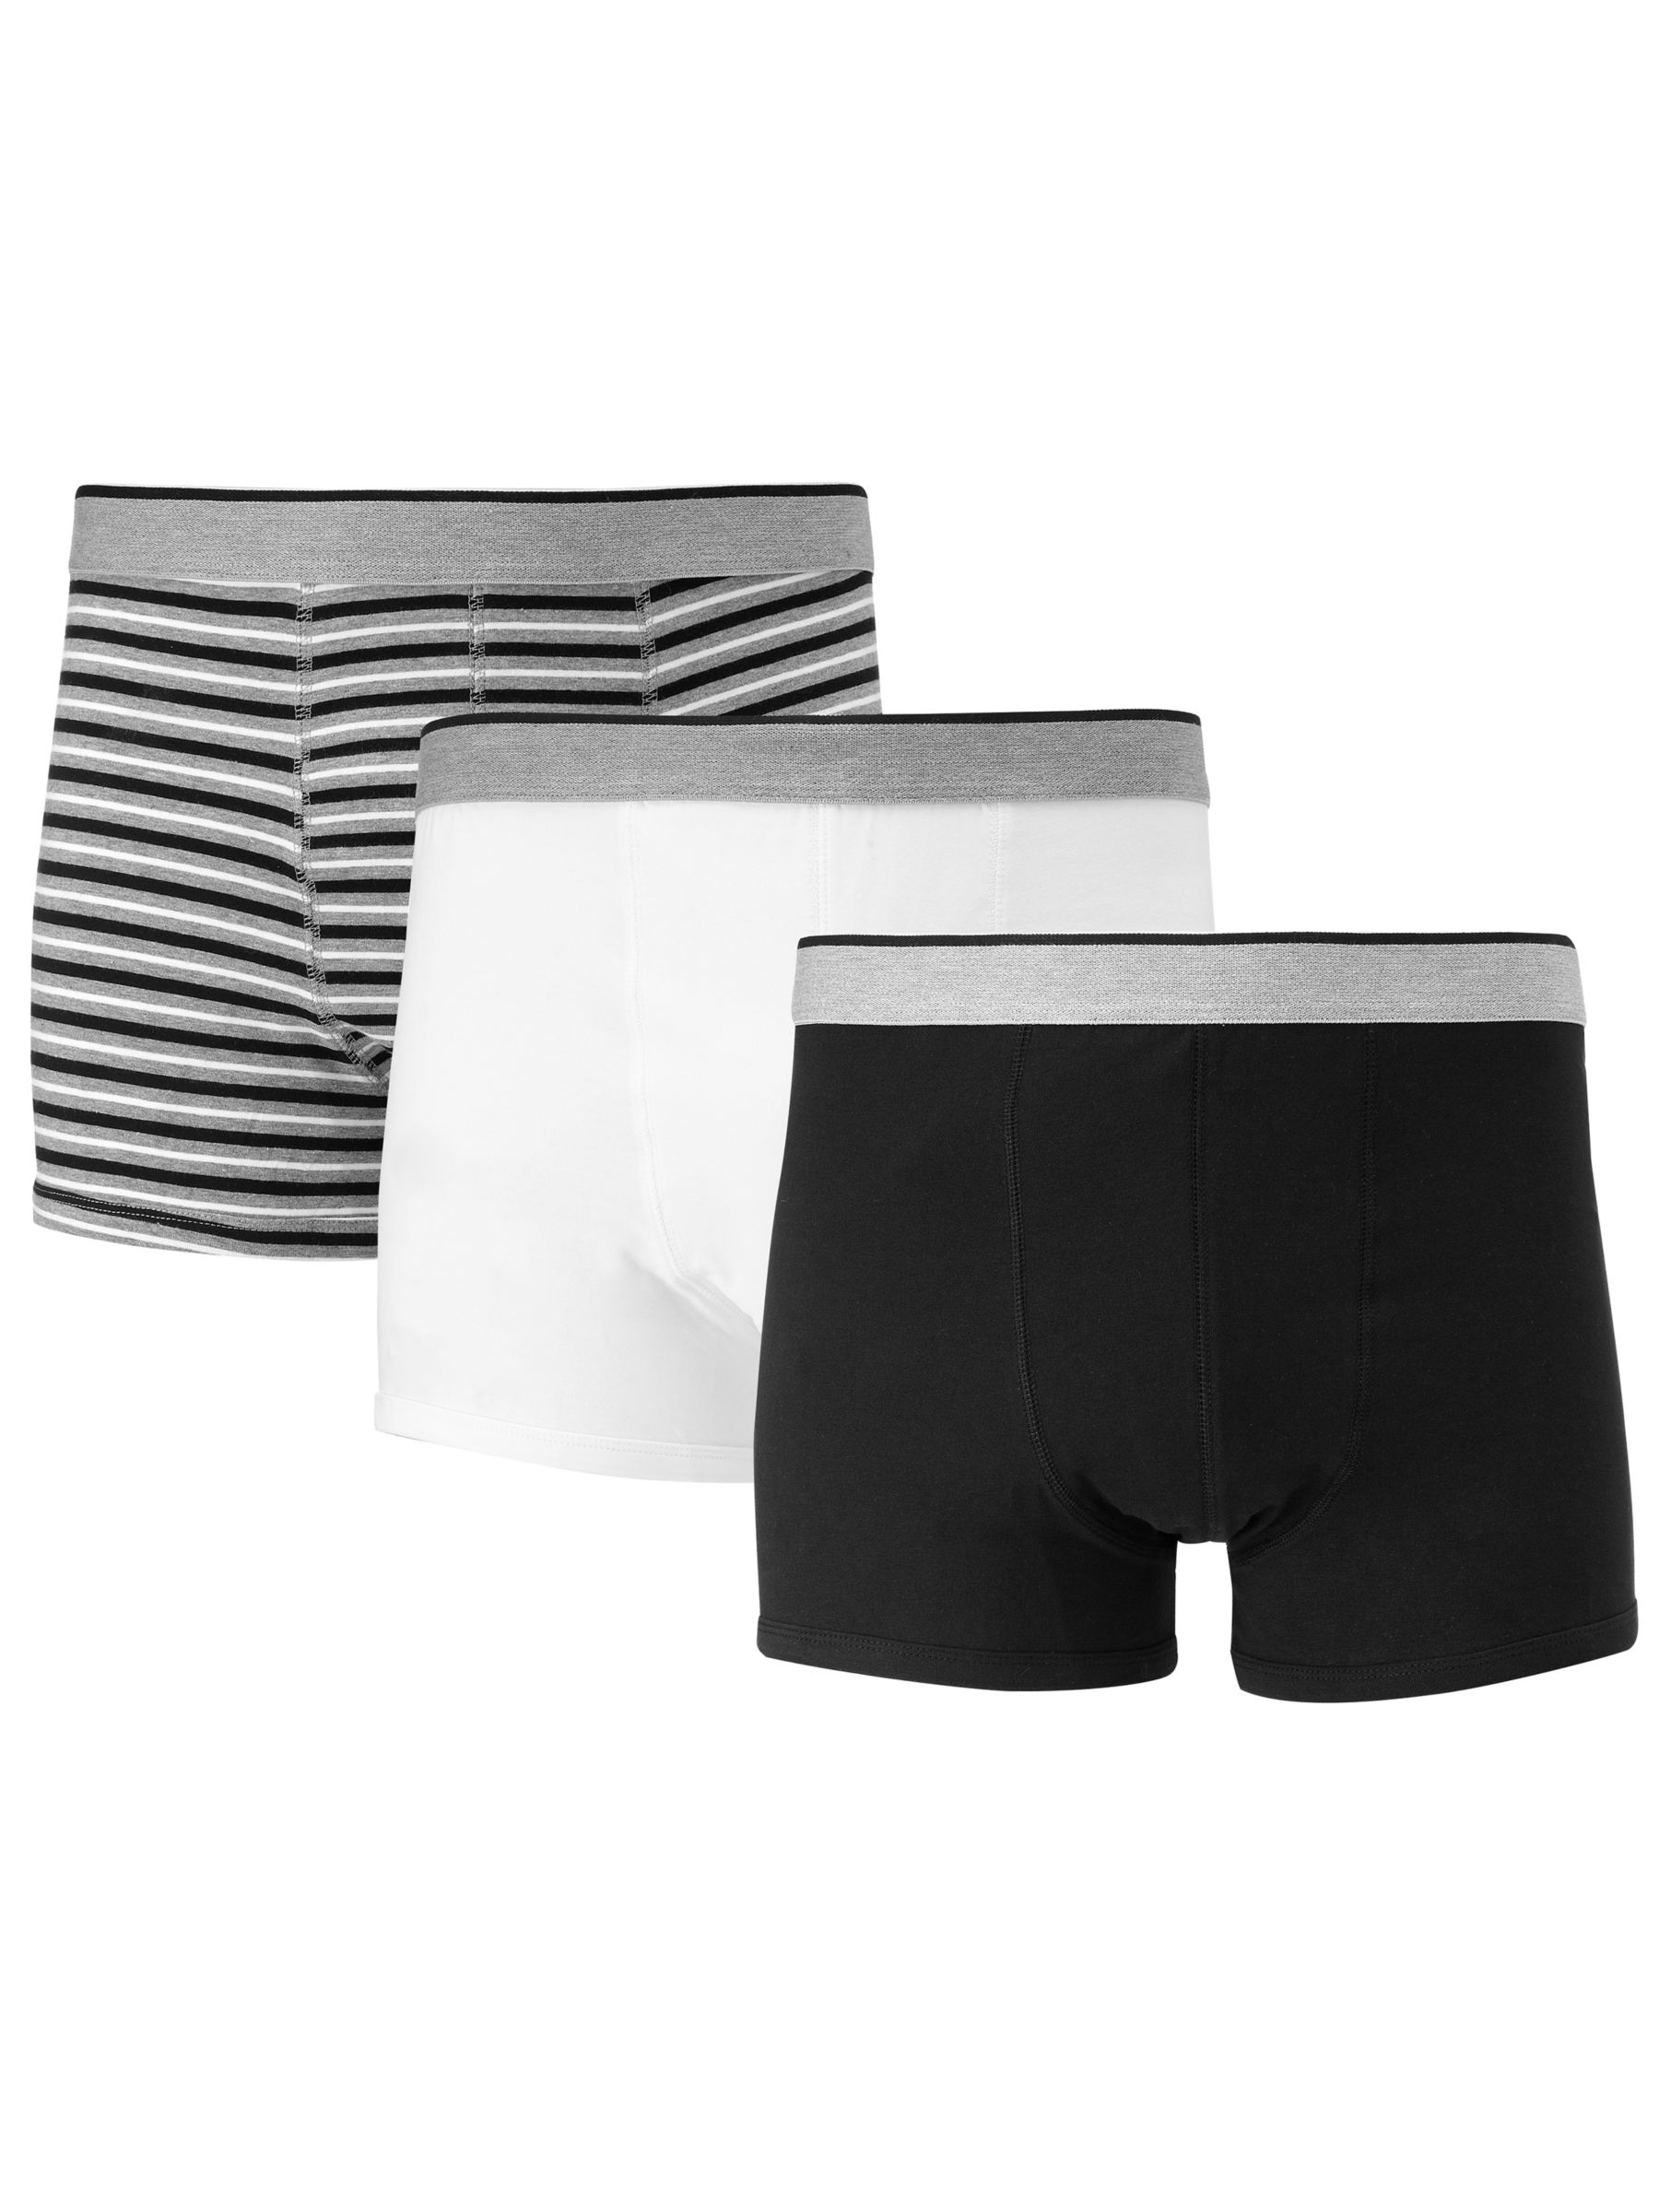 John Lewis Organic Cotton Hipster Trunks, Pack of 3, White/Grey/Black